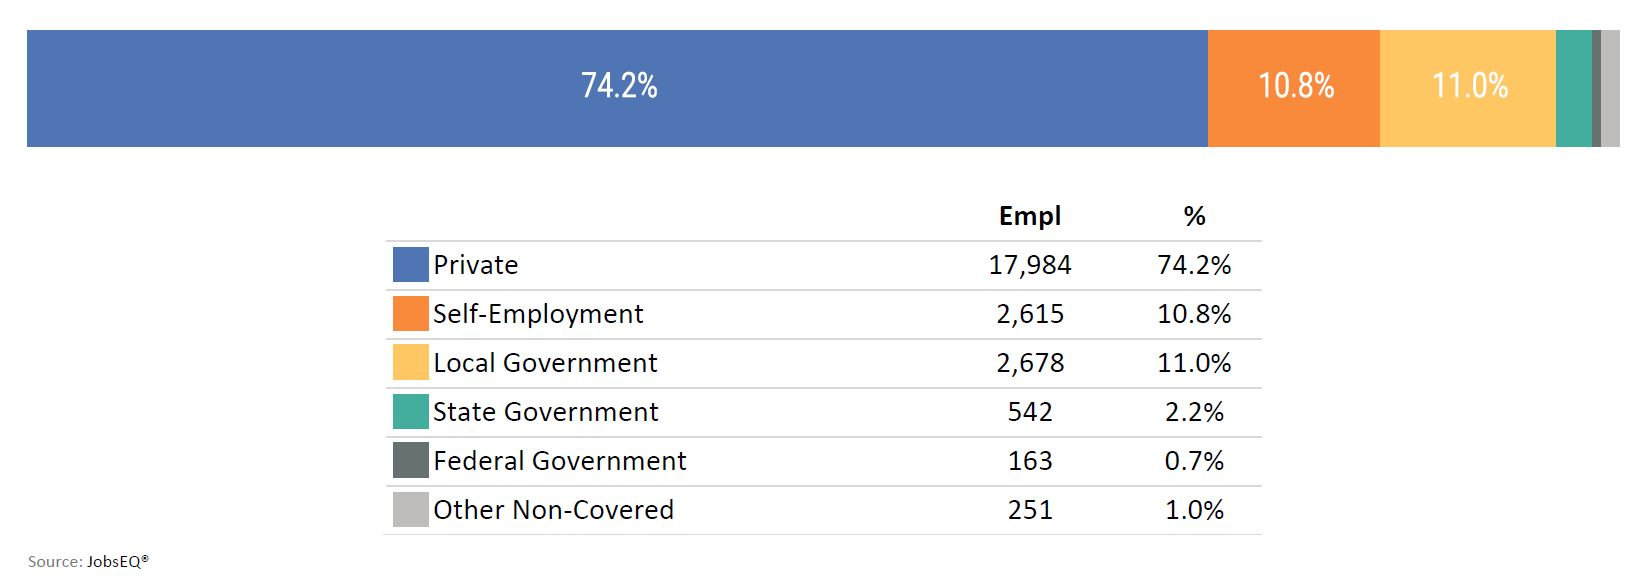 Employment Distribution by Type